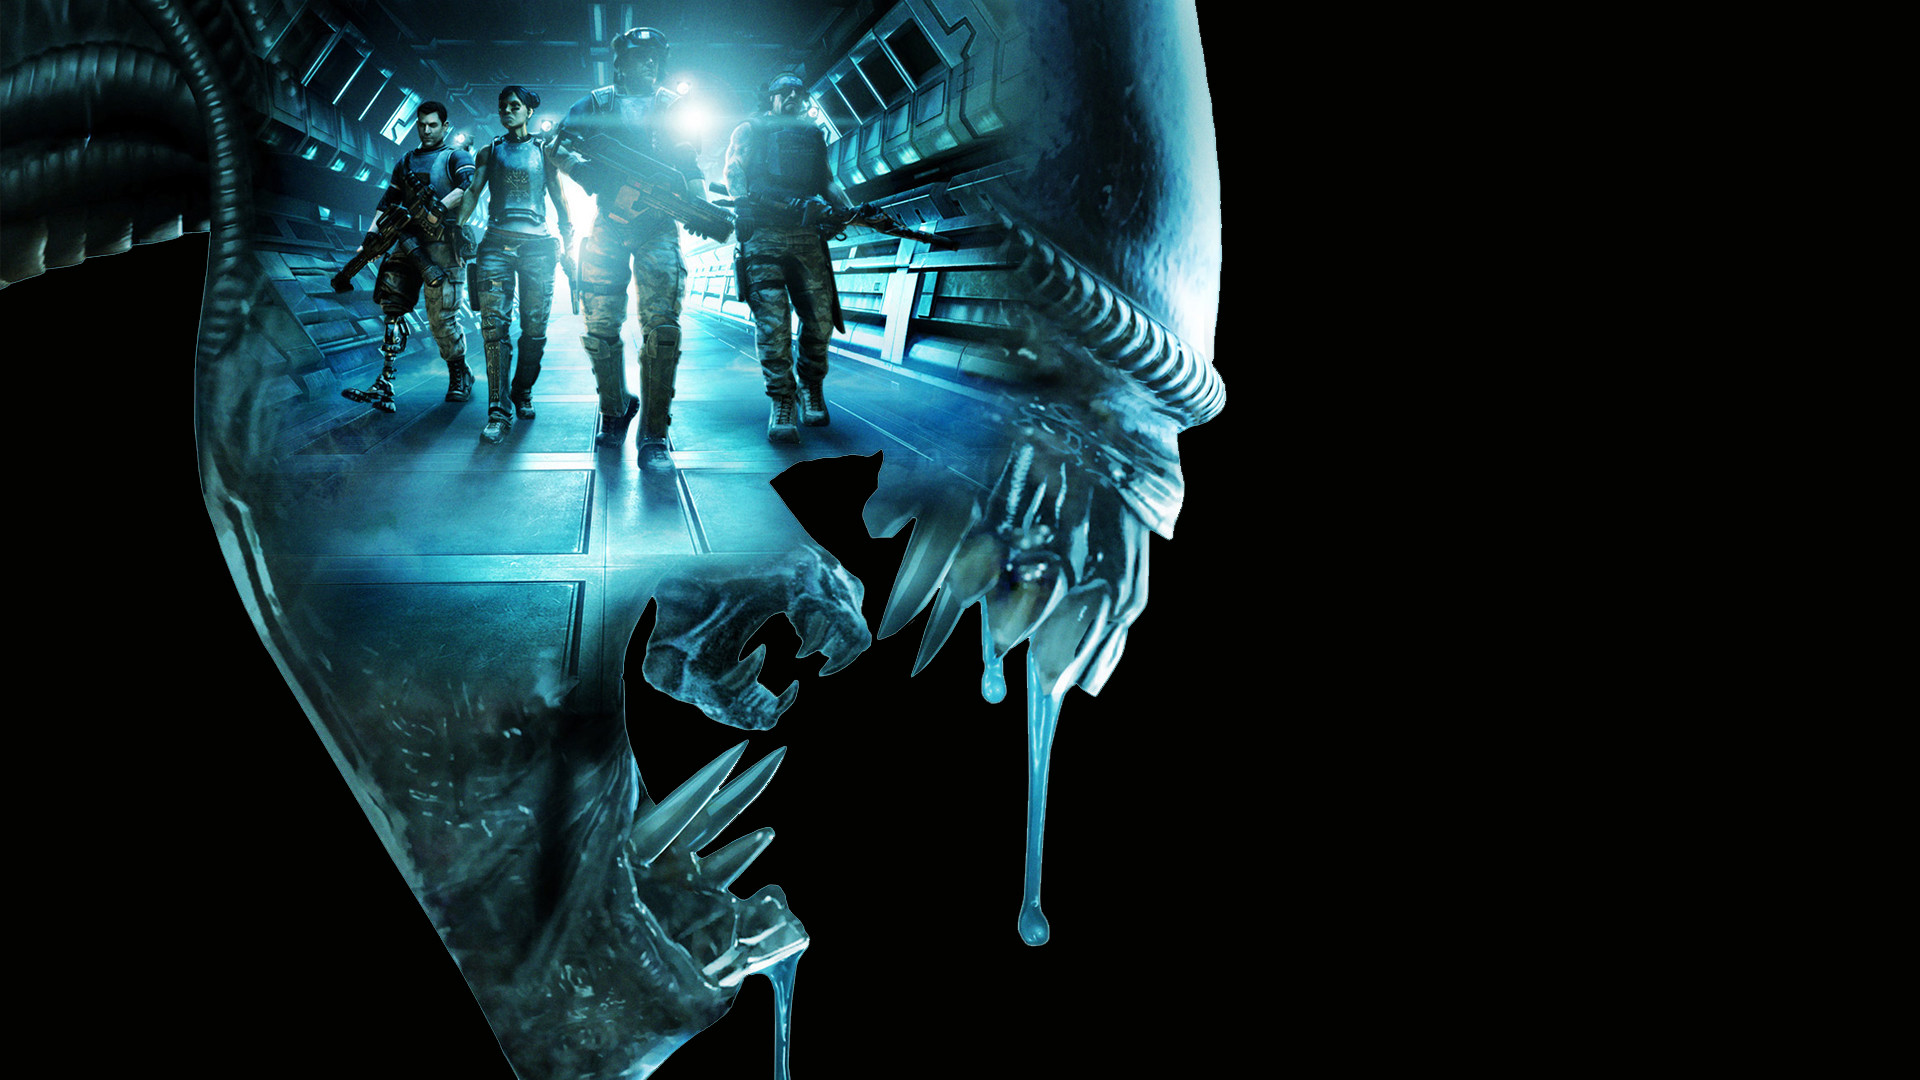 Res: 1920x1080, Aliens Colonial Marines